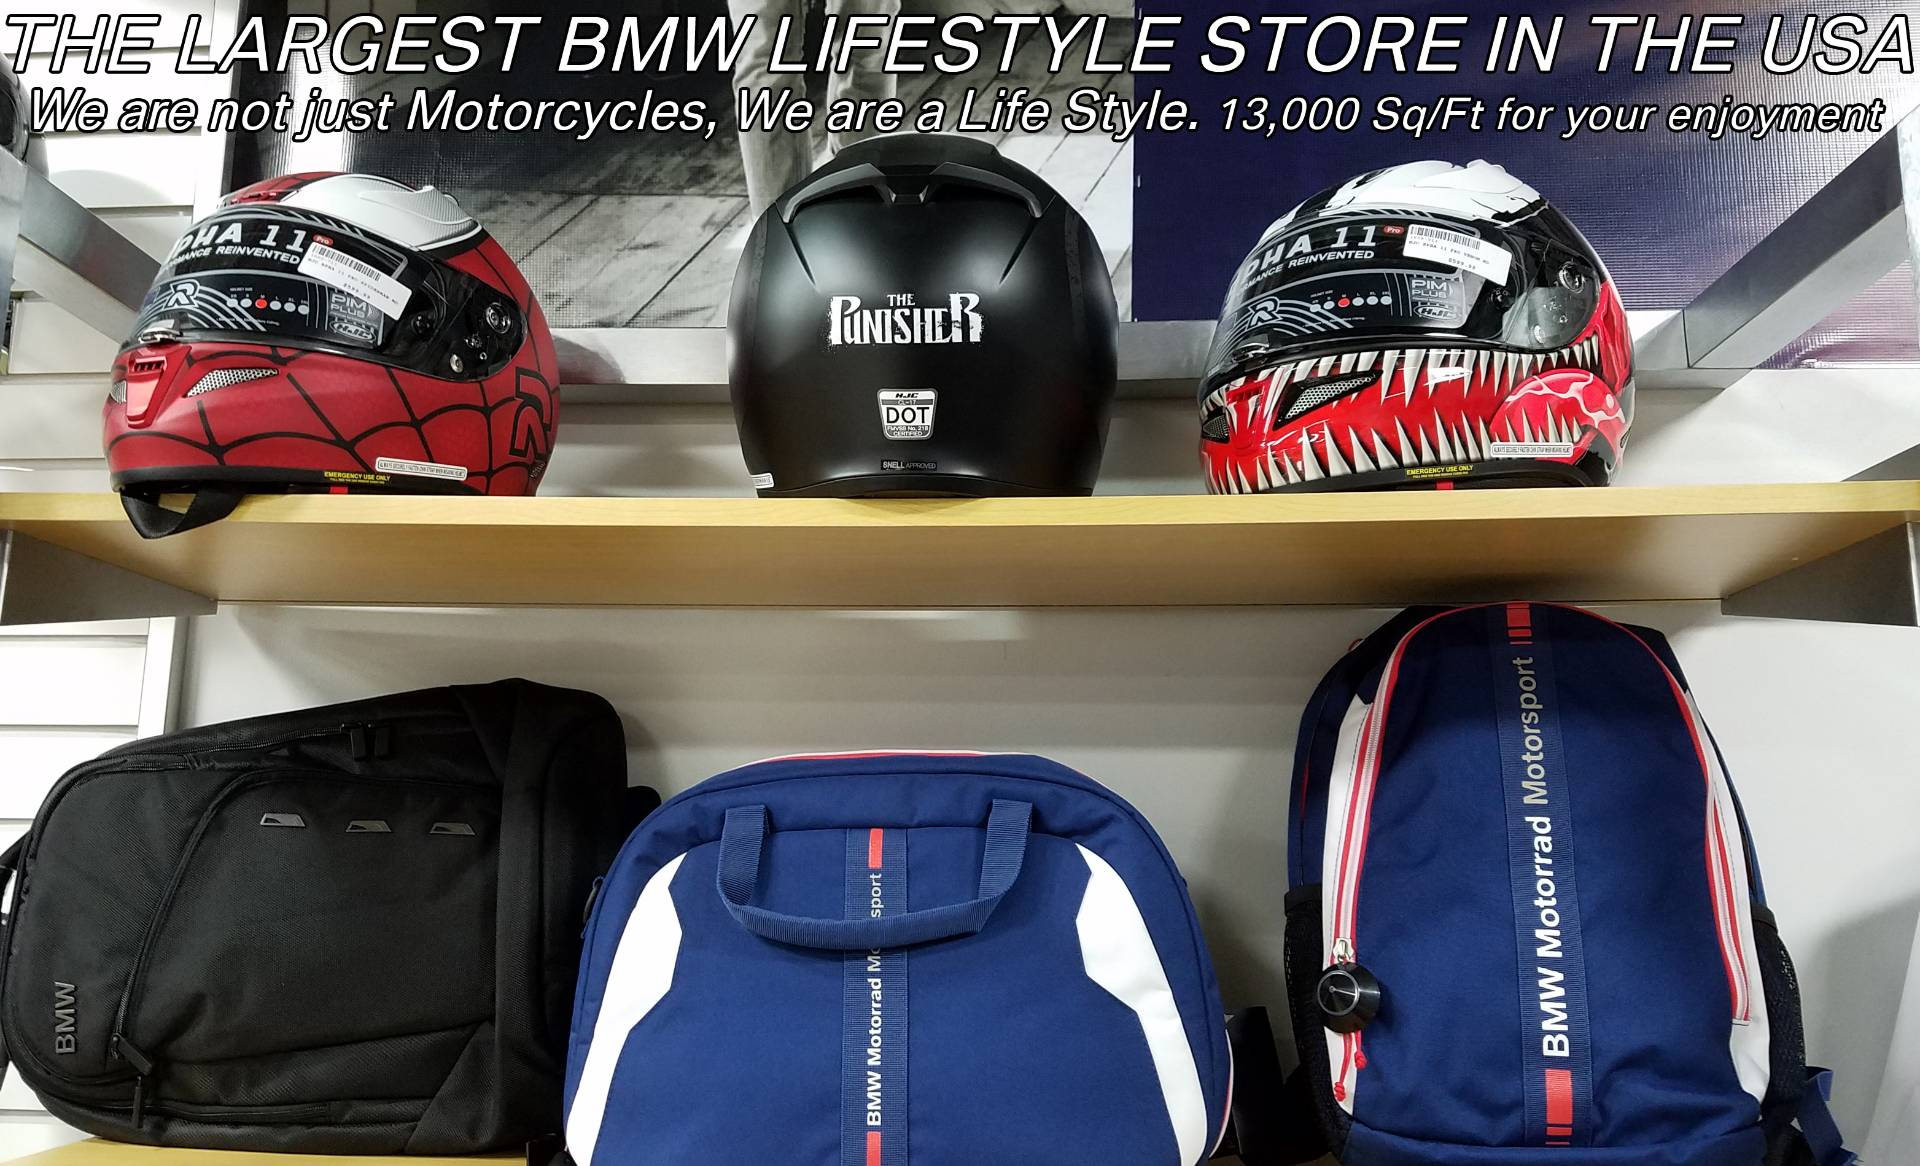 New 2019 BMW R 1250 GS for sale, BMW R 1250GS for sale, BMW Motorcycle GS, new BMW GS, Spirit of GS, BMW Motorcycles of Miami, Motorcycles of Miami, Motorcycles Miami, New Motorcycles, Used Motorcycles, pre-owned. #BMWMotorcyclesOfMiami #MotorcyclesOfMiami. - Photo 40